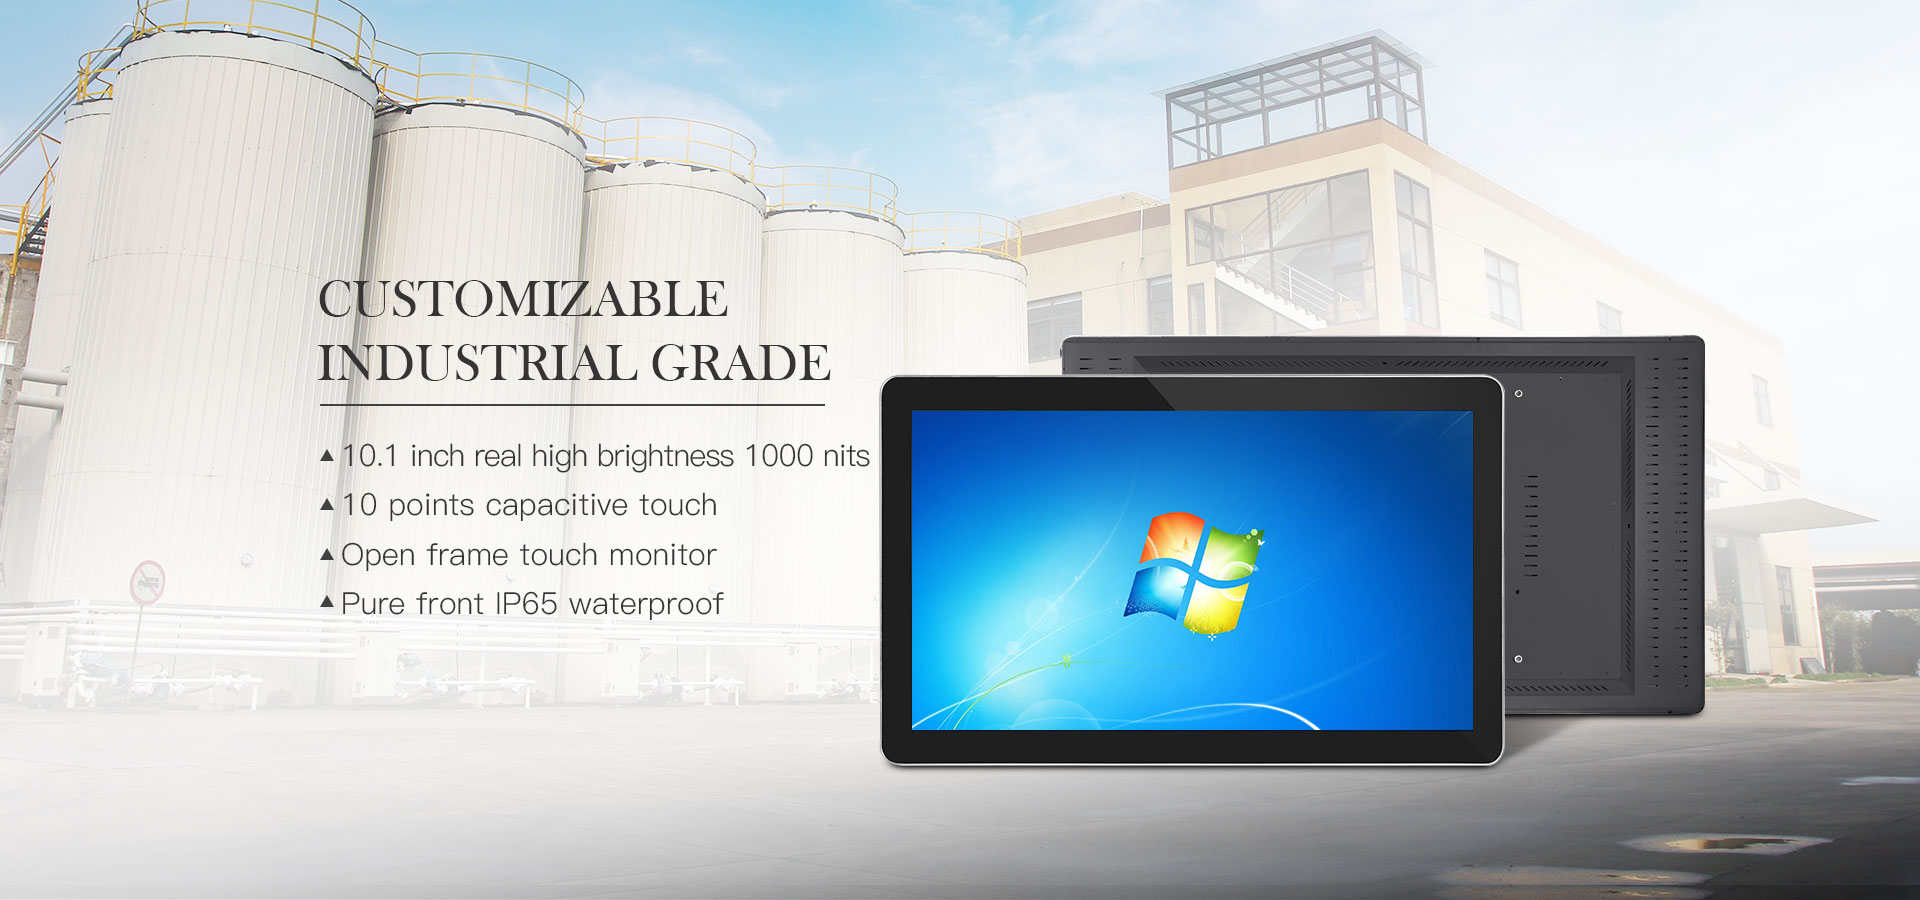 compacitive touch monitor